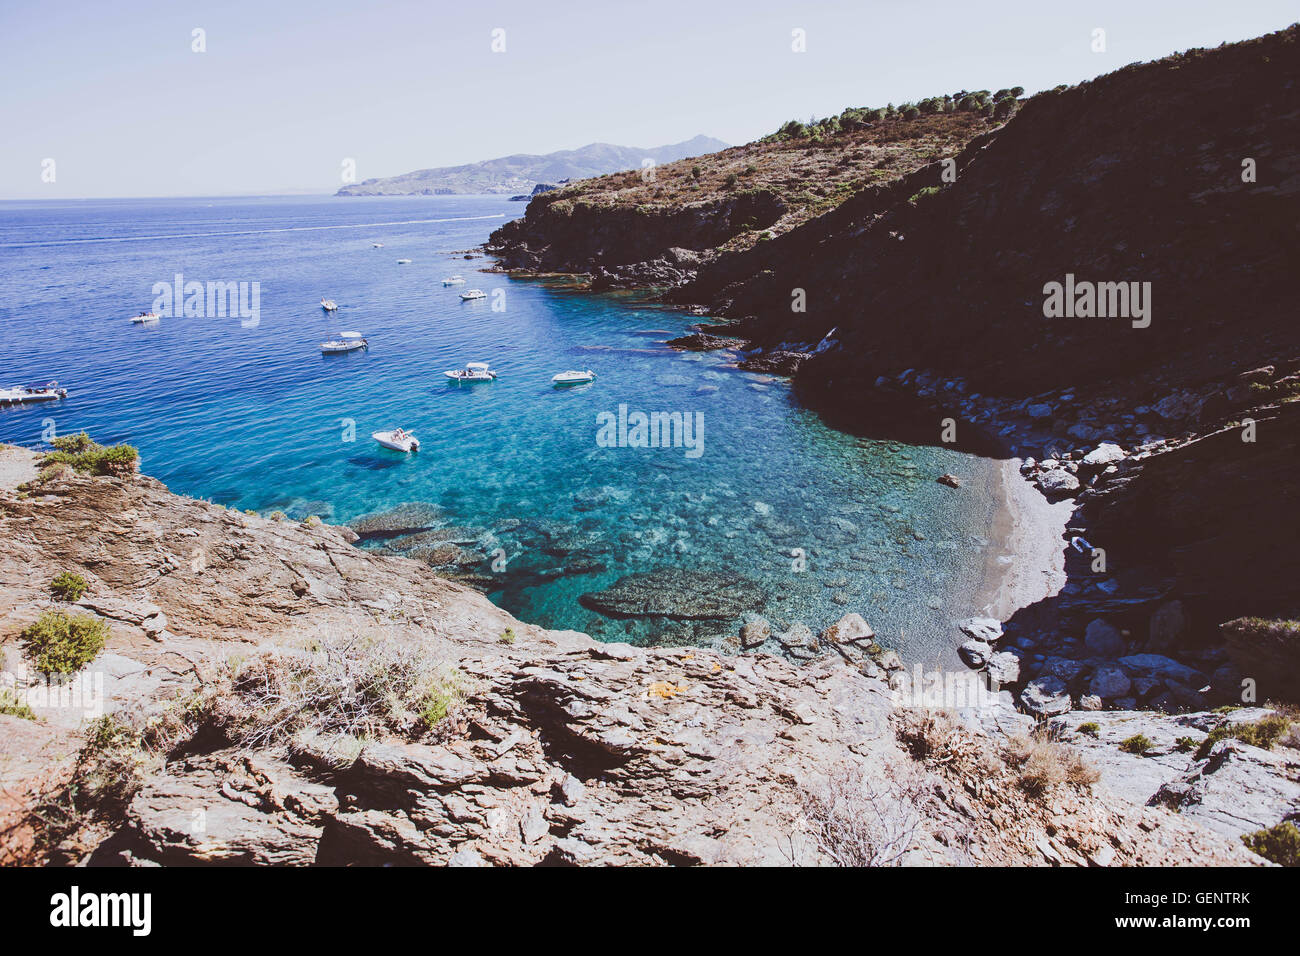 Bay with a beach in the french mediterranian coastline. mooring place for boat, Costa Brava. - Stock Image